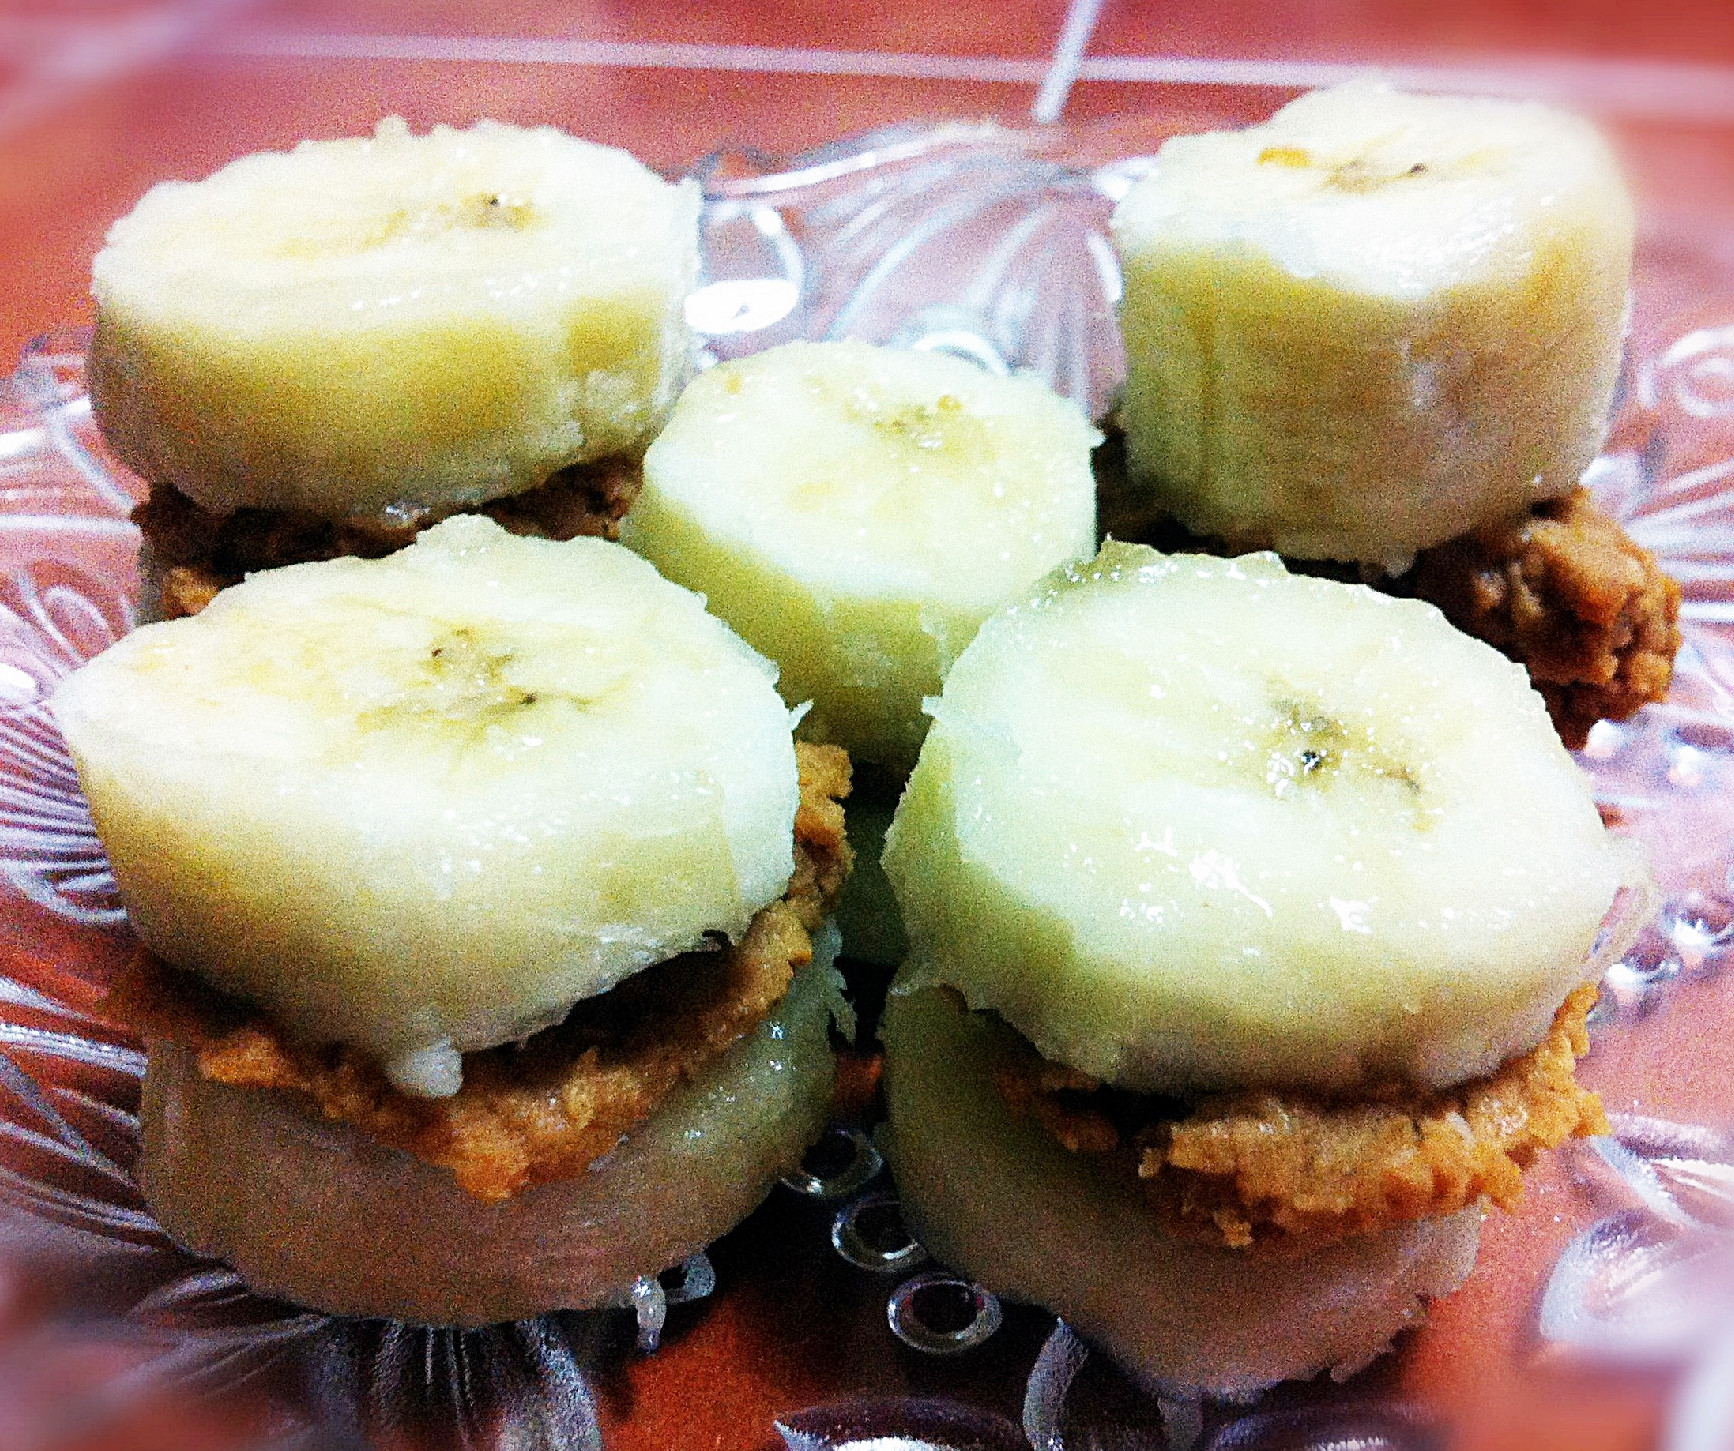 Desserts That Are Healthy  Healthy Dessert Ideas Banana and Peanut Butter Bites